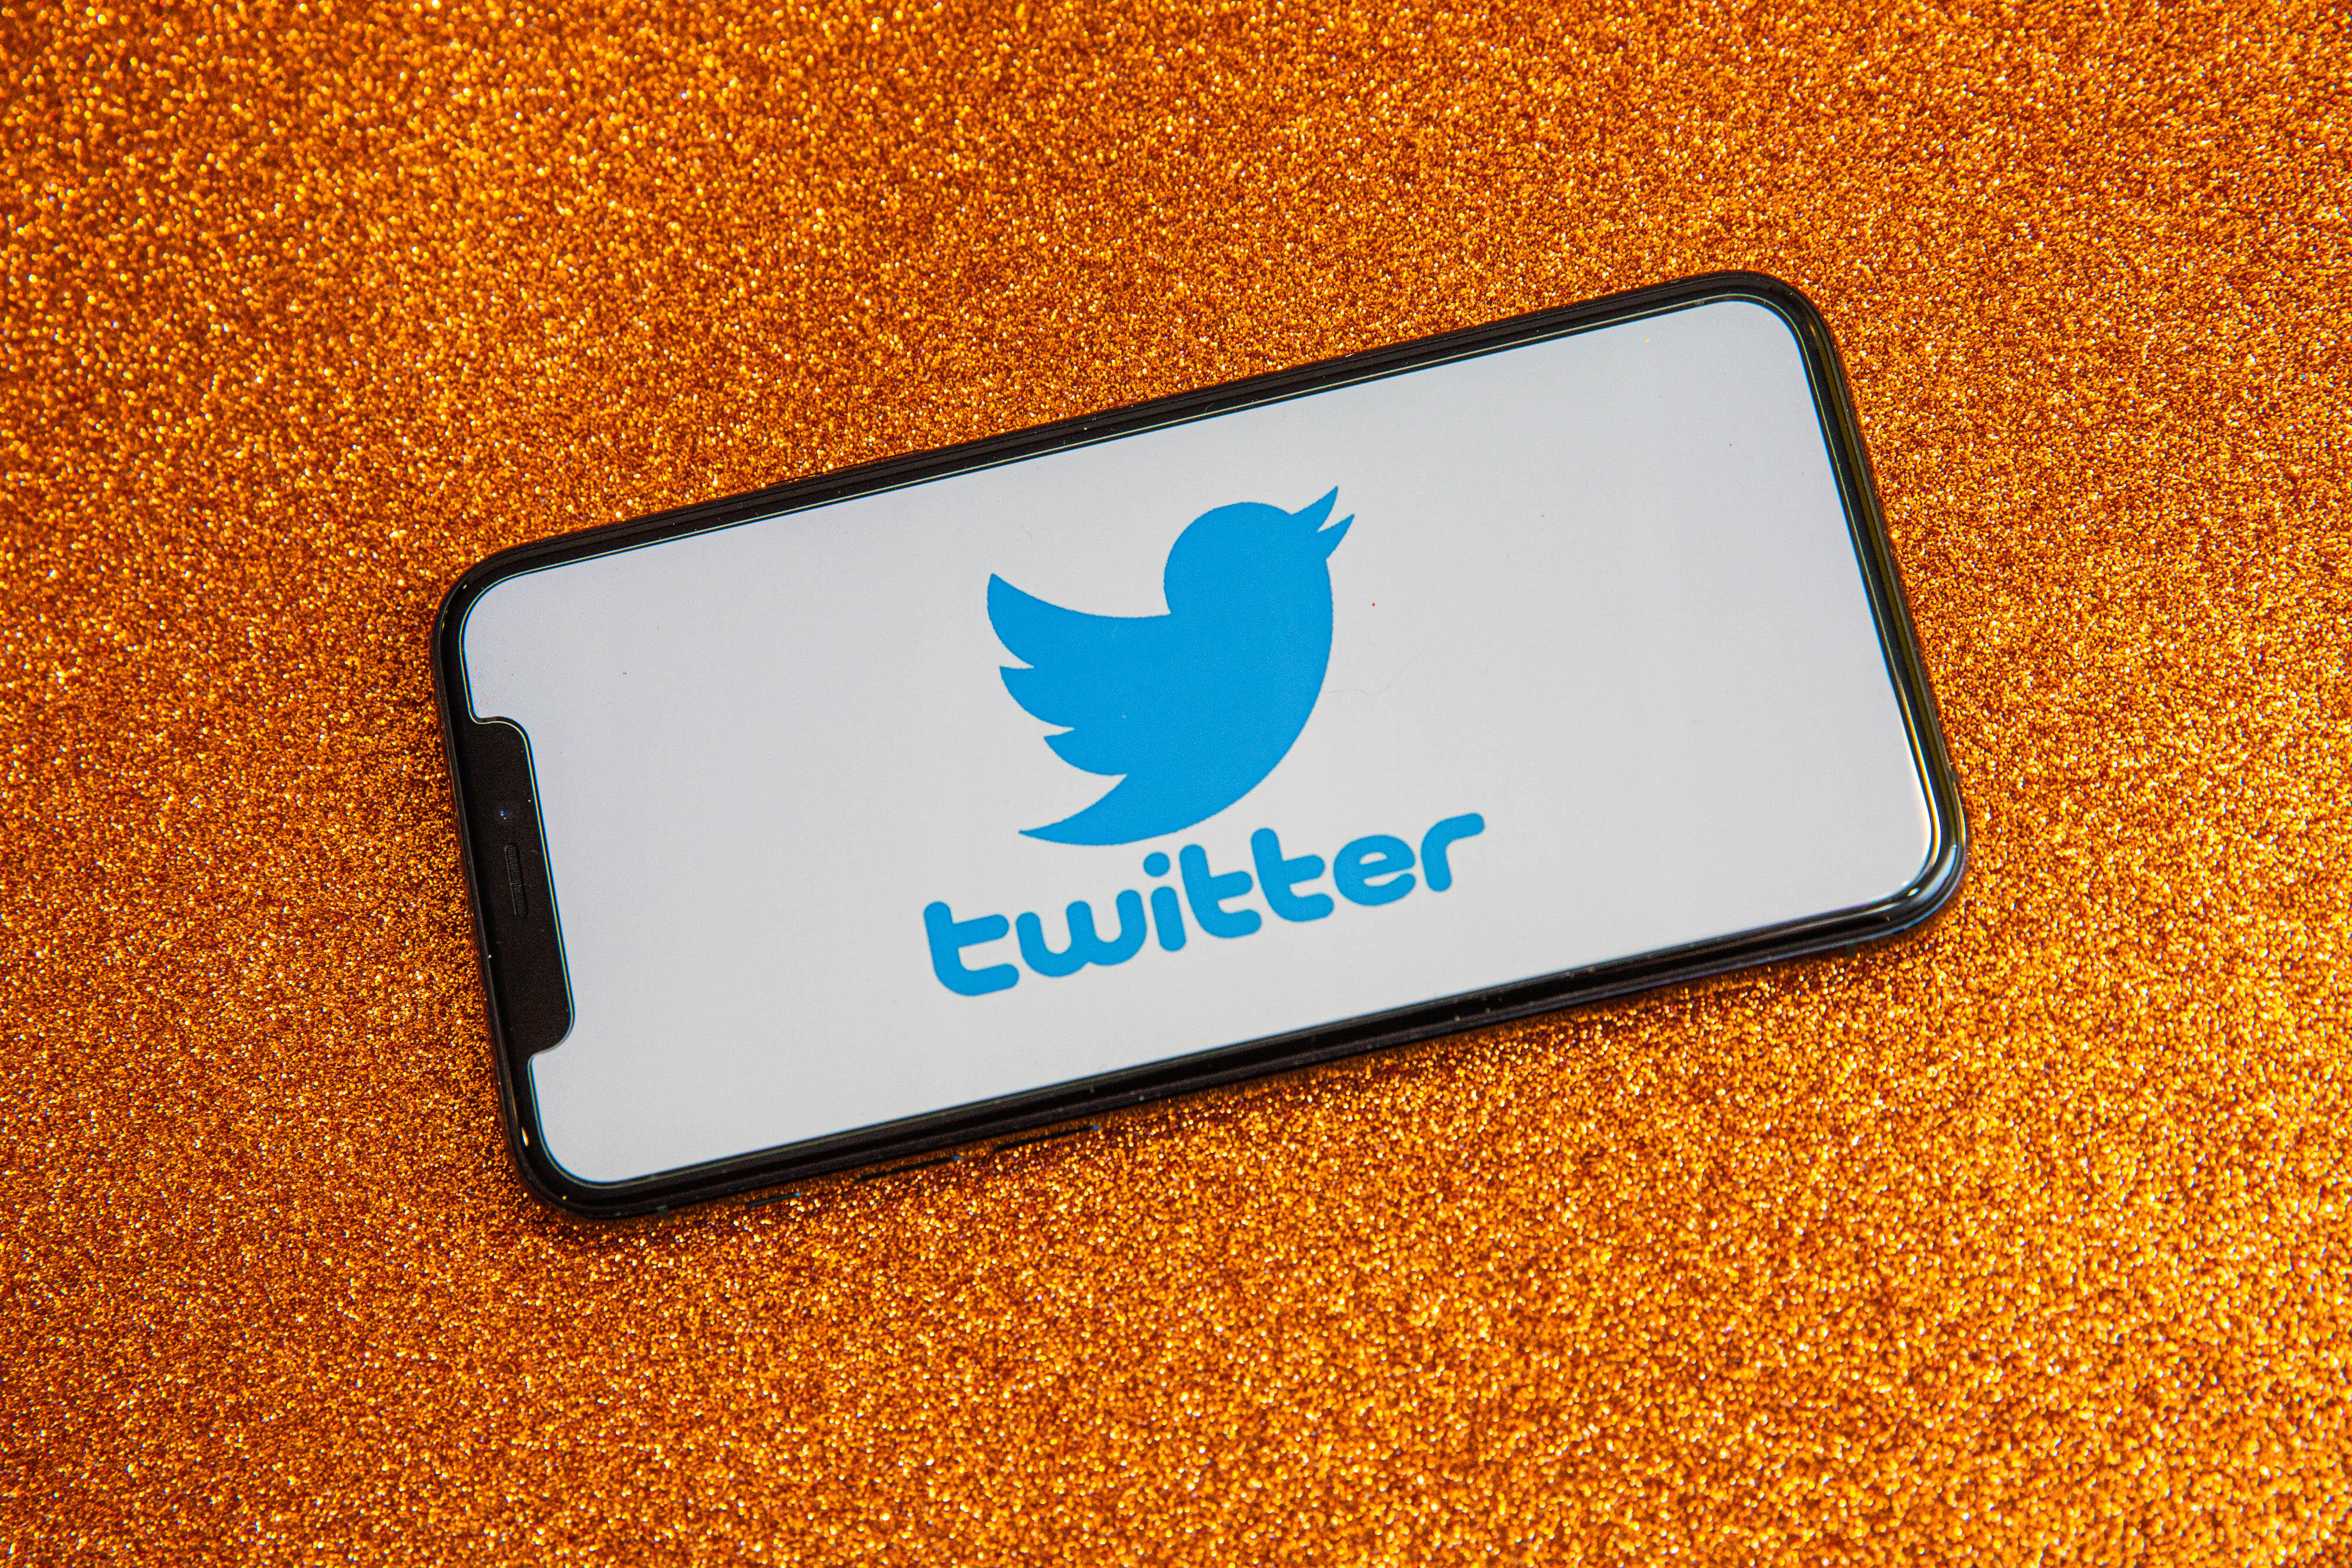 Twitter expands Spaces to all users with at least 600 followers